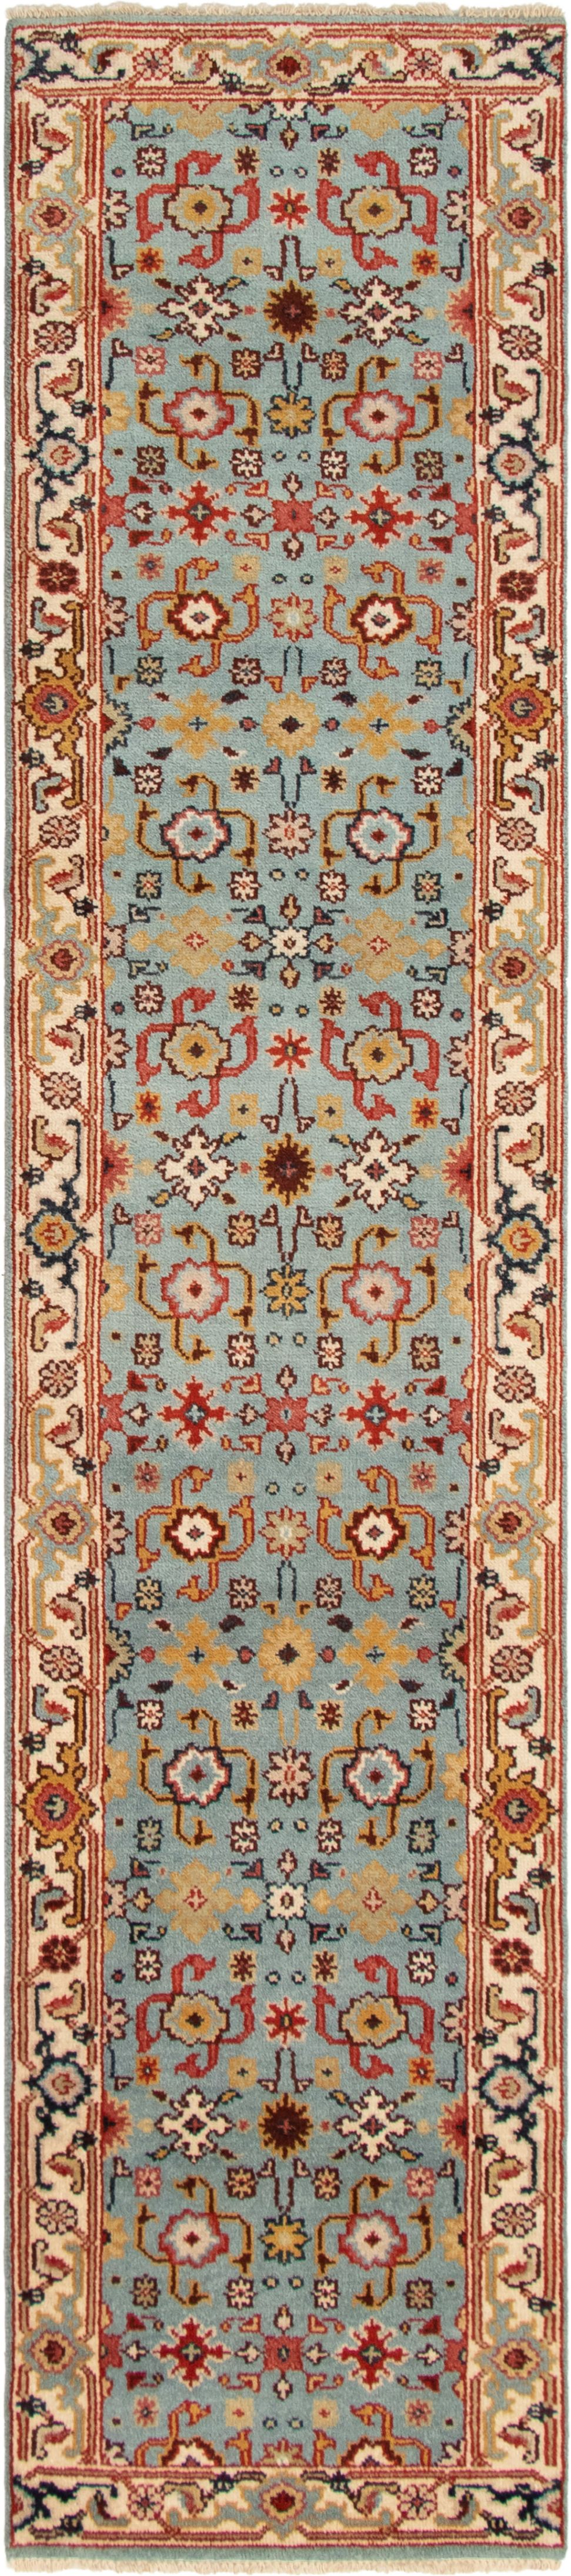 """Hand-knotted Serapi Heritage Light Blue  Wool Rug 2'7"""" x 12'4"""" Size: 2'7"""" x 12'4"""""""